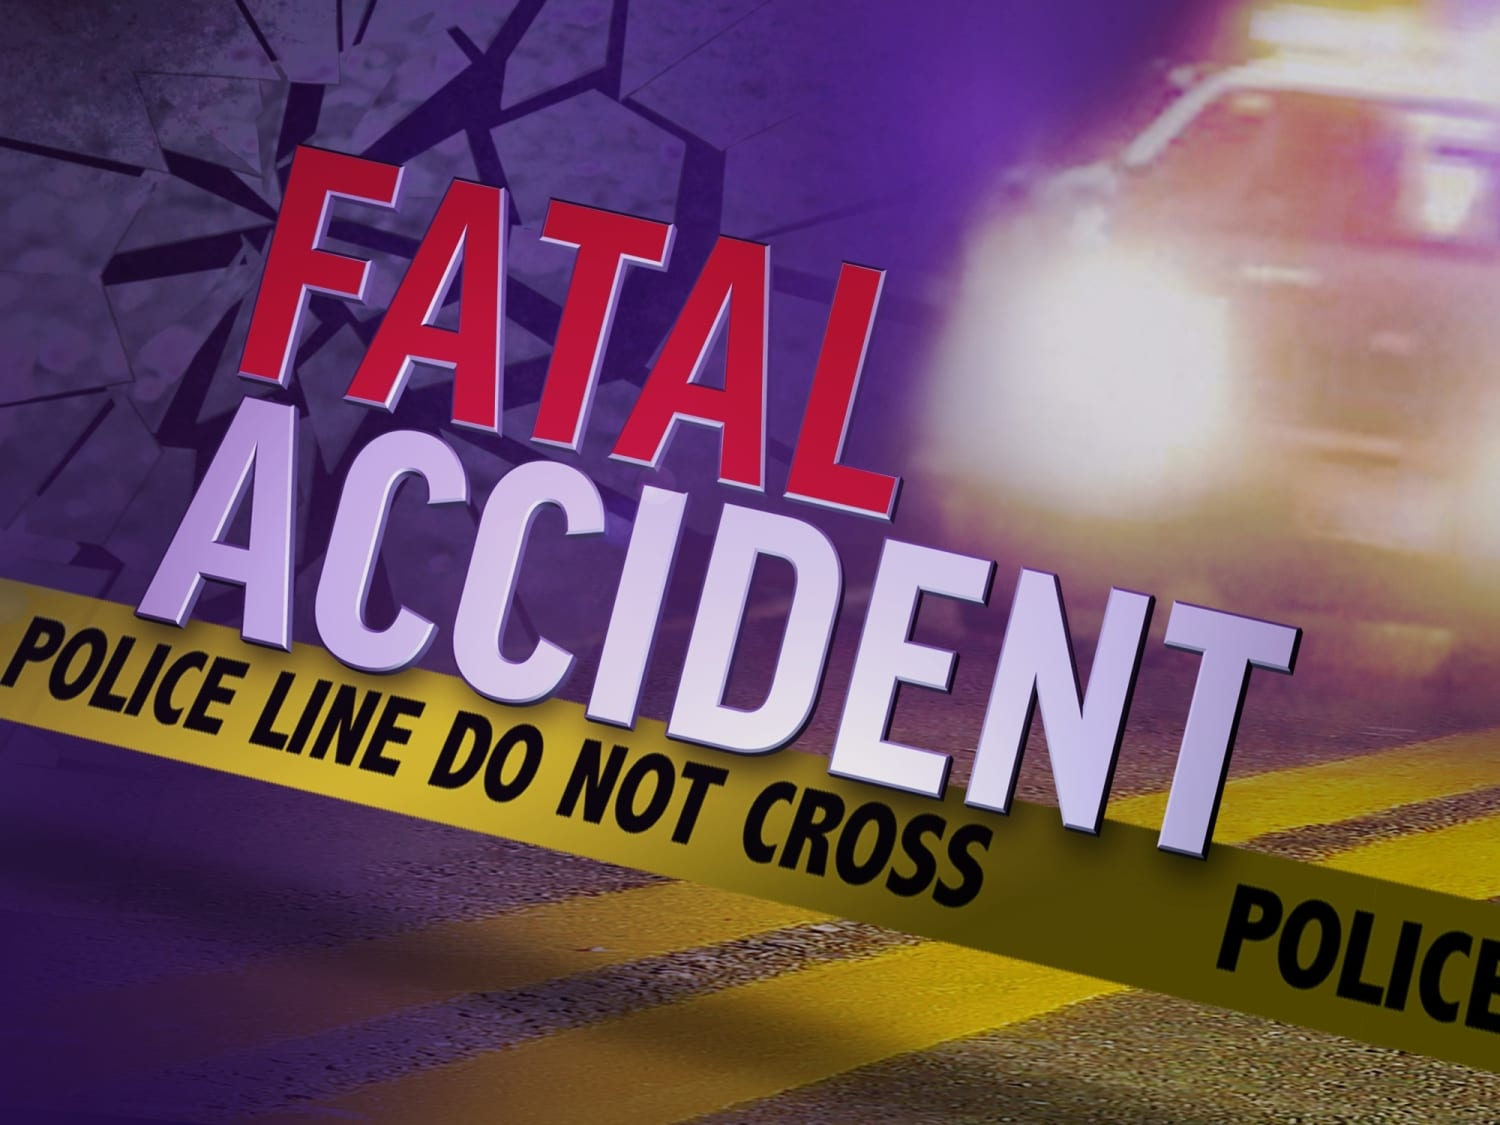 4 killed in fatal accident on Asafo- Akim road